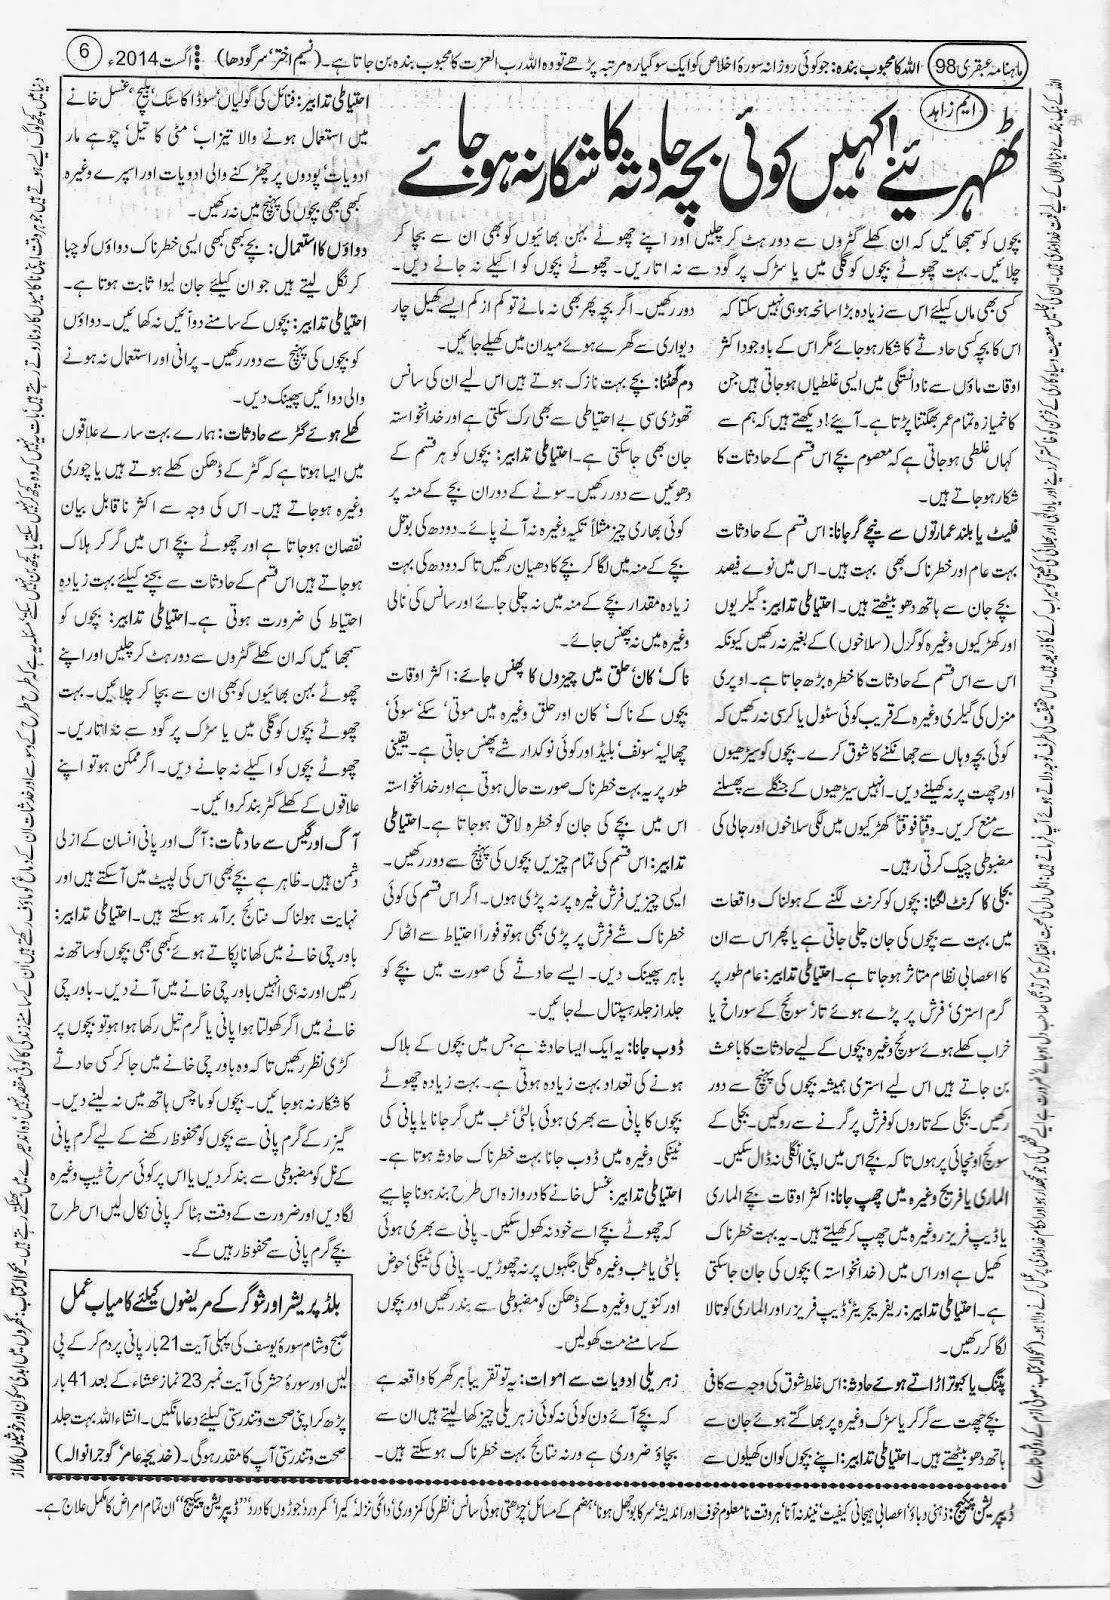 Ubqari August 2014 Page 6